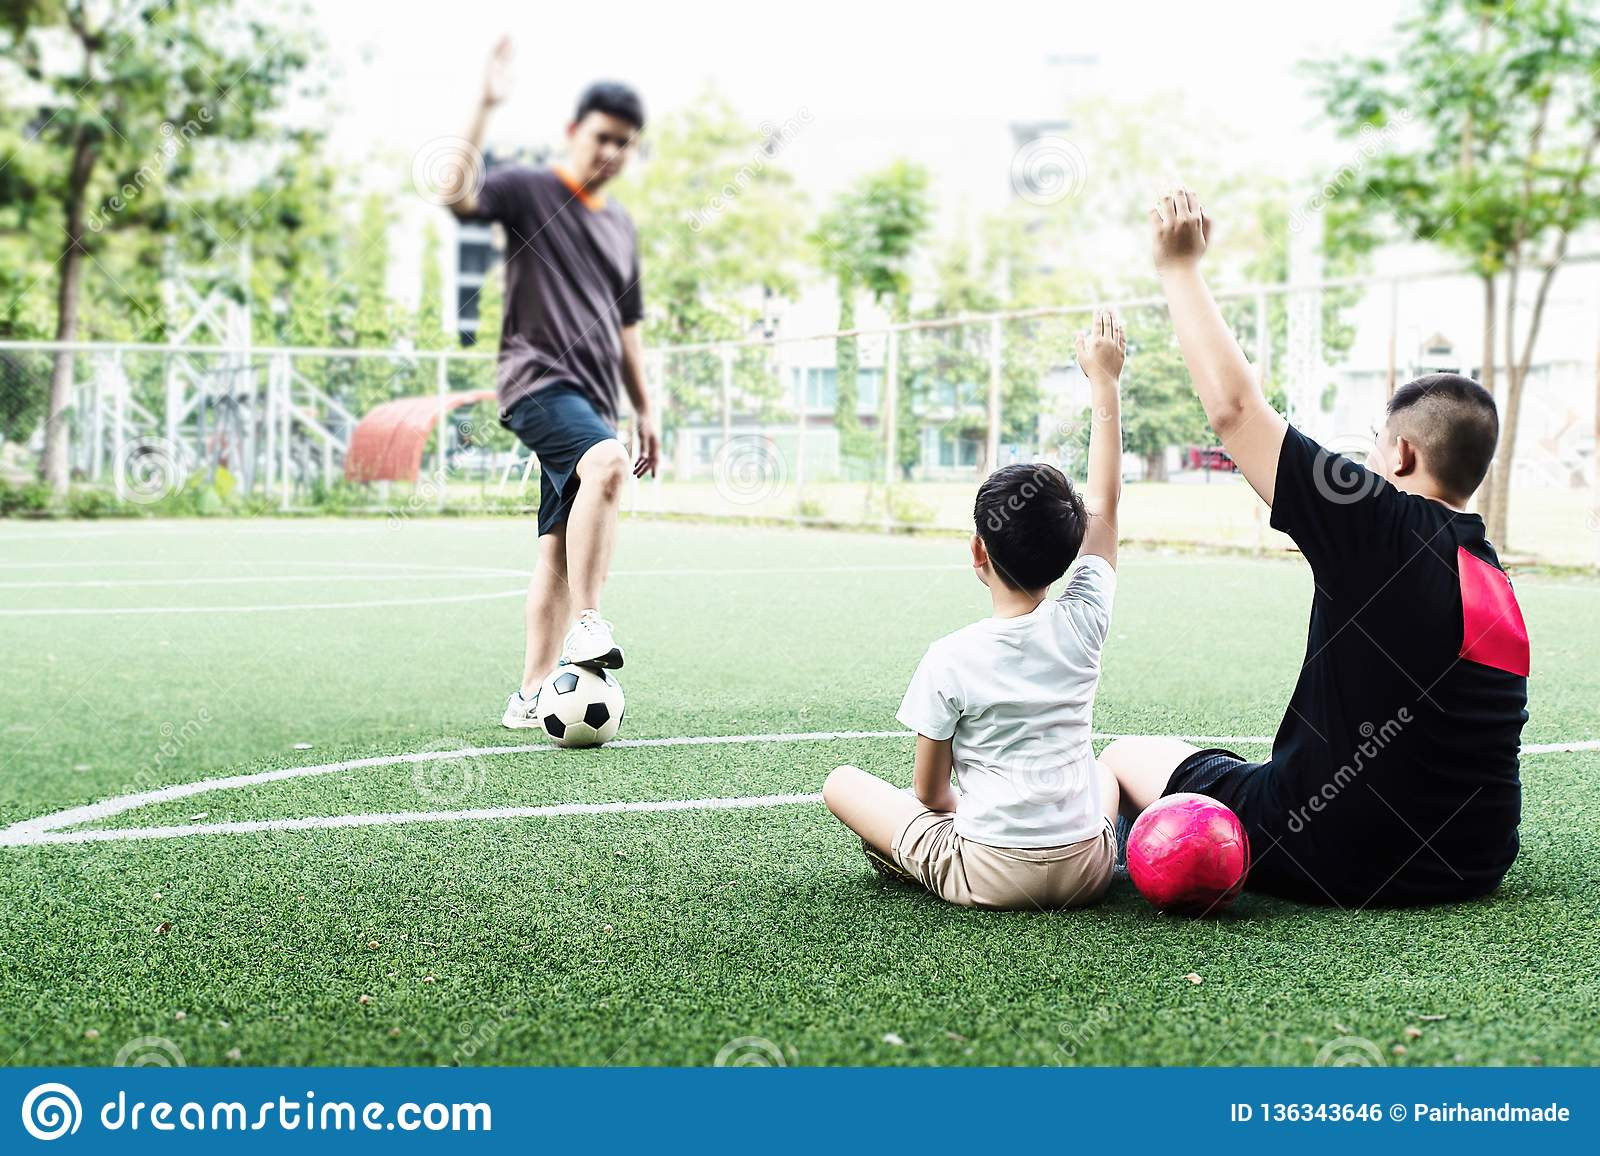 Dad coaches his children how to play soccer